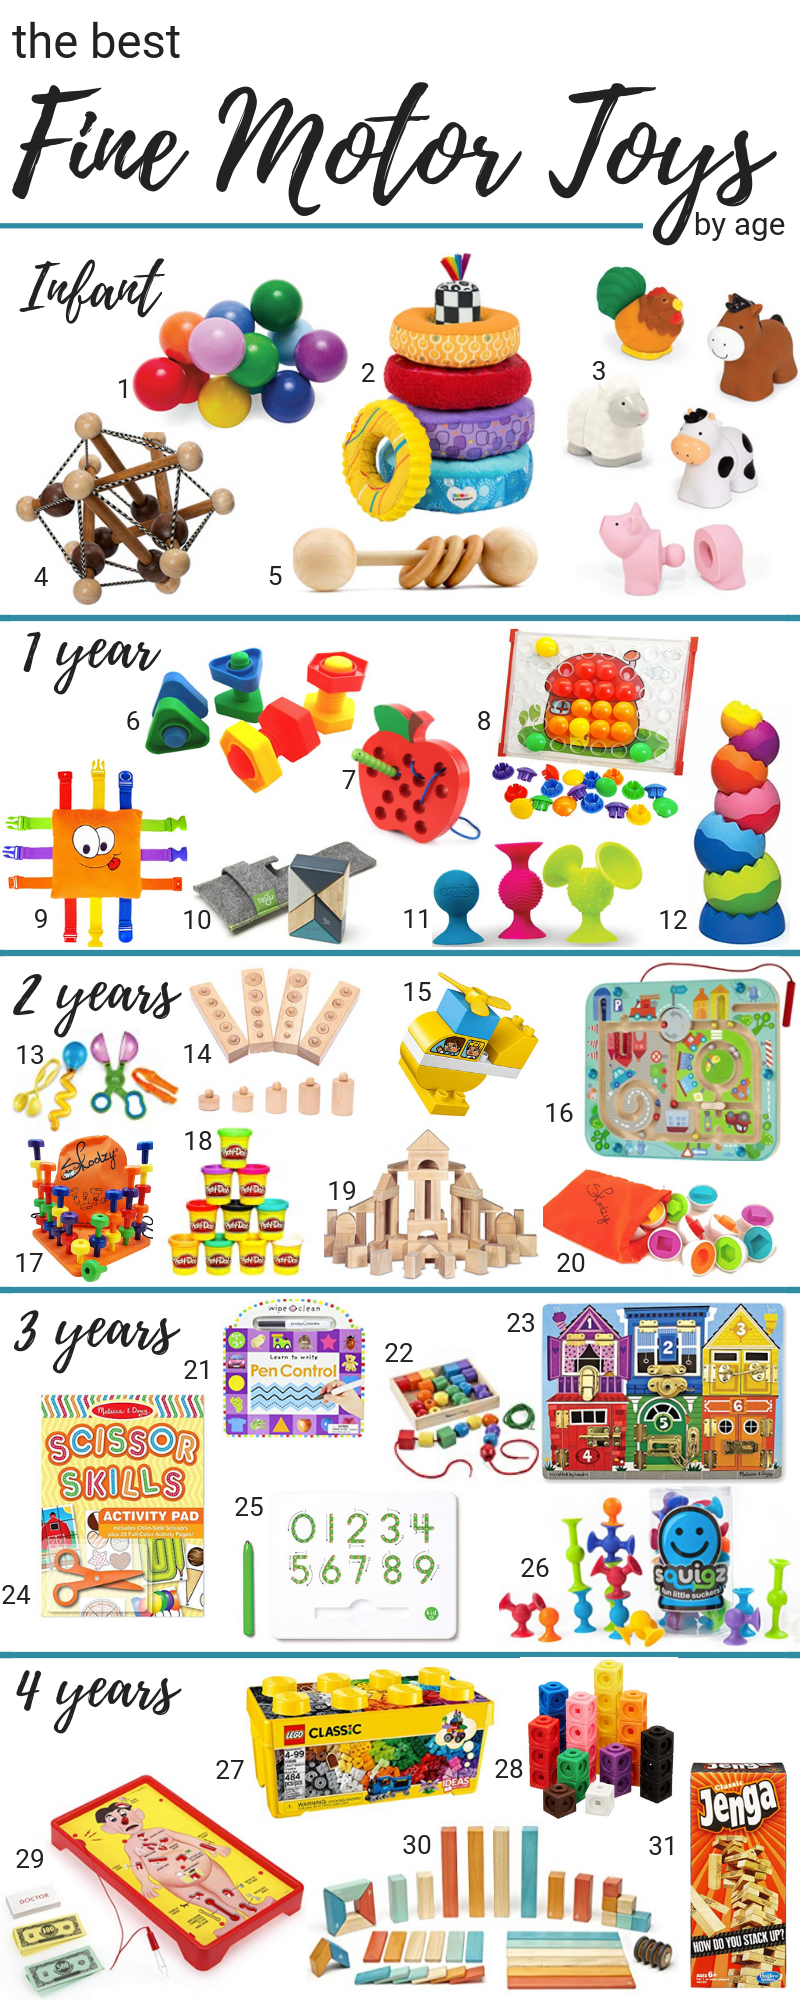 The Best Toys for Fine Motor Skills in Children ages 0-4. This post may contain affiliate links. Please see my full  disclosure policy  for details.